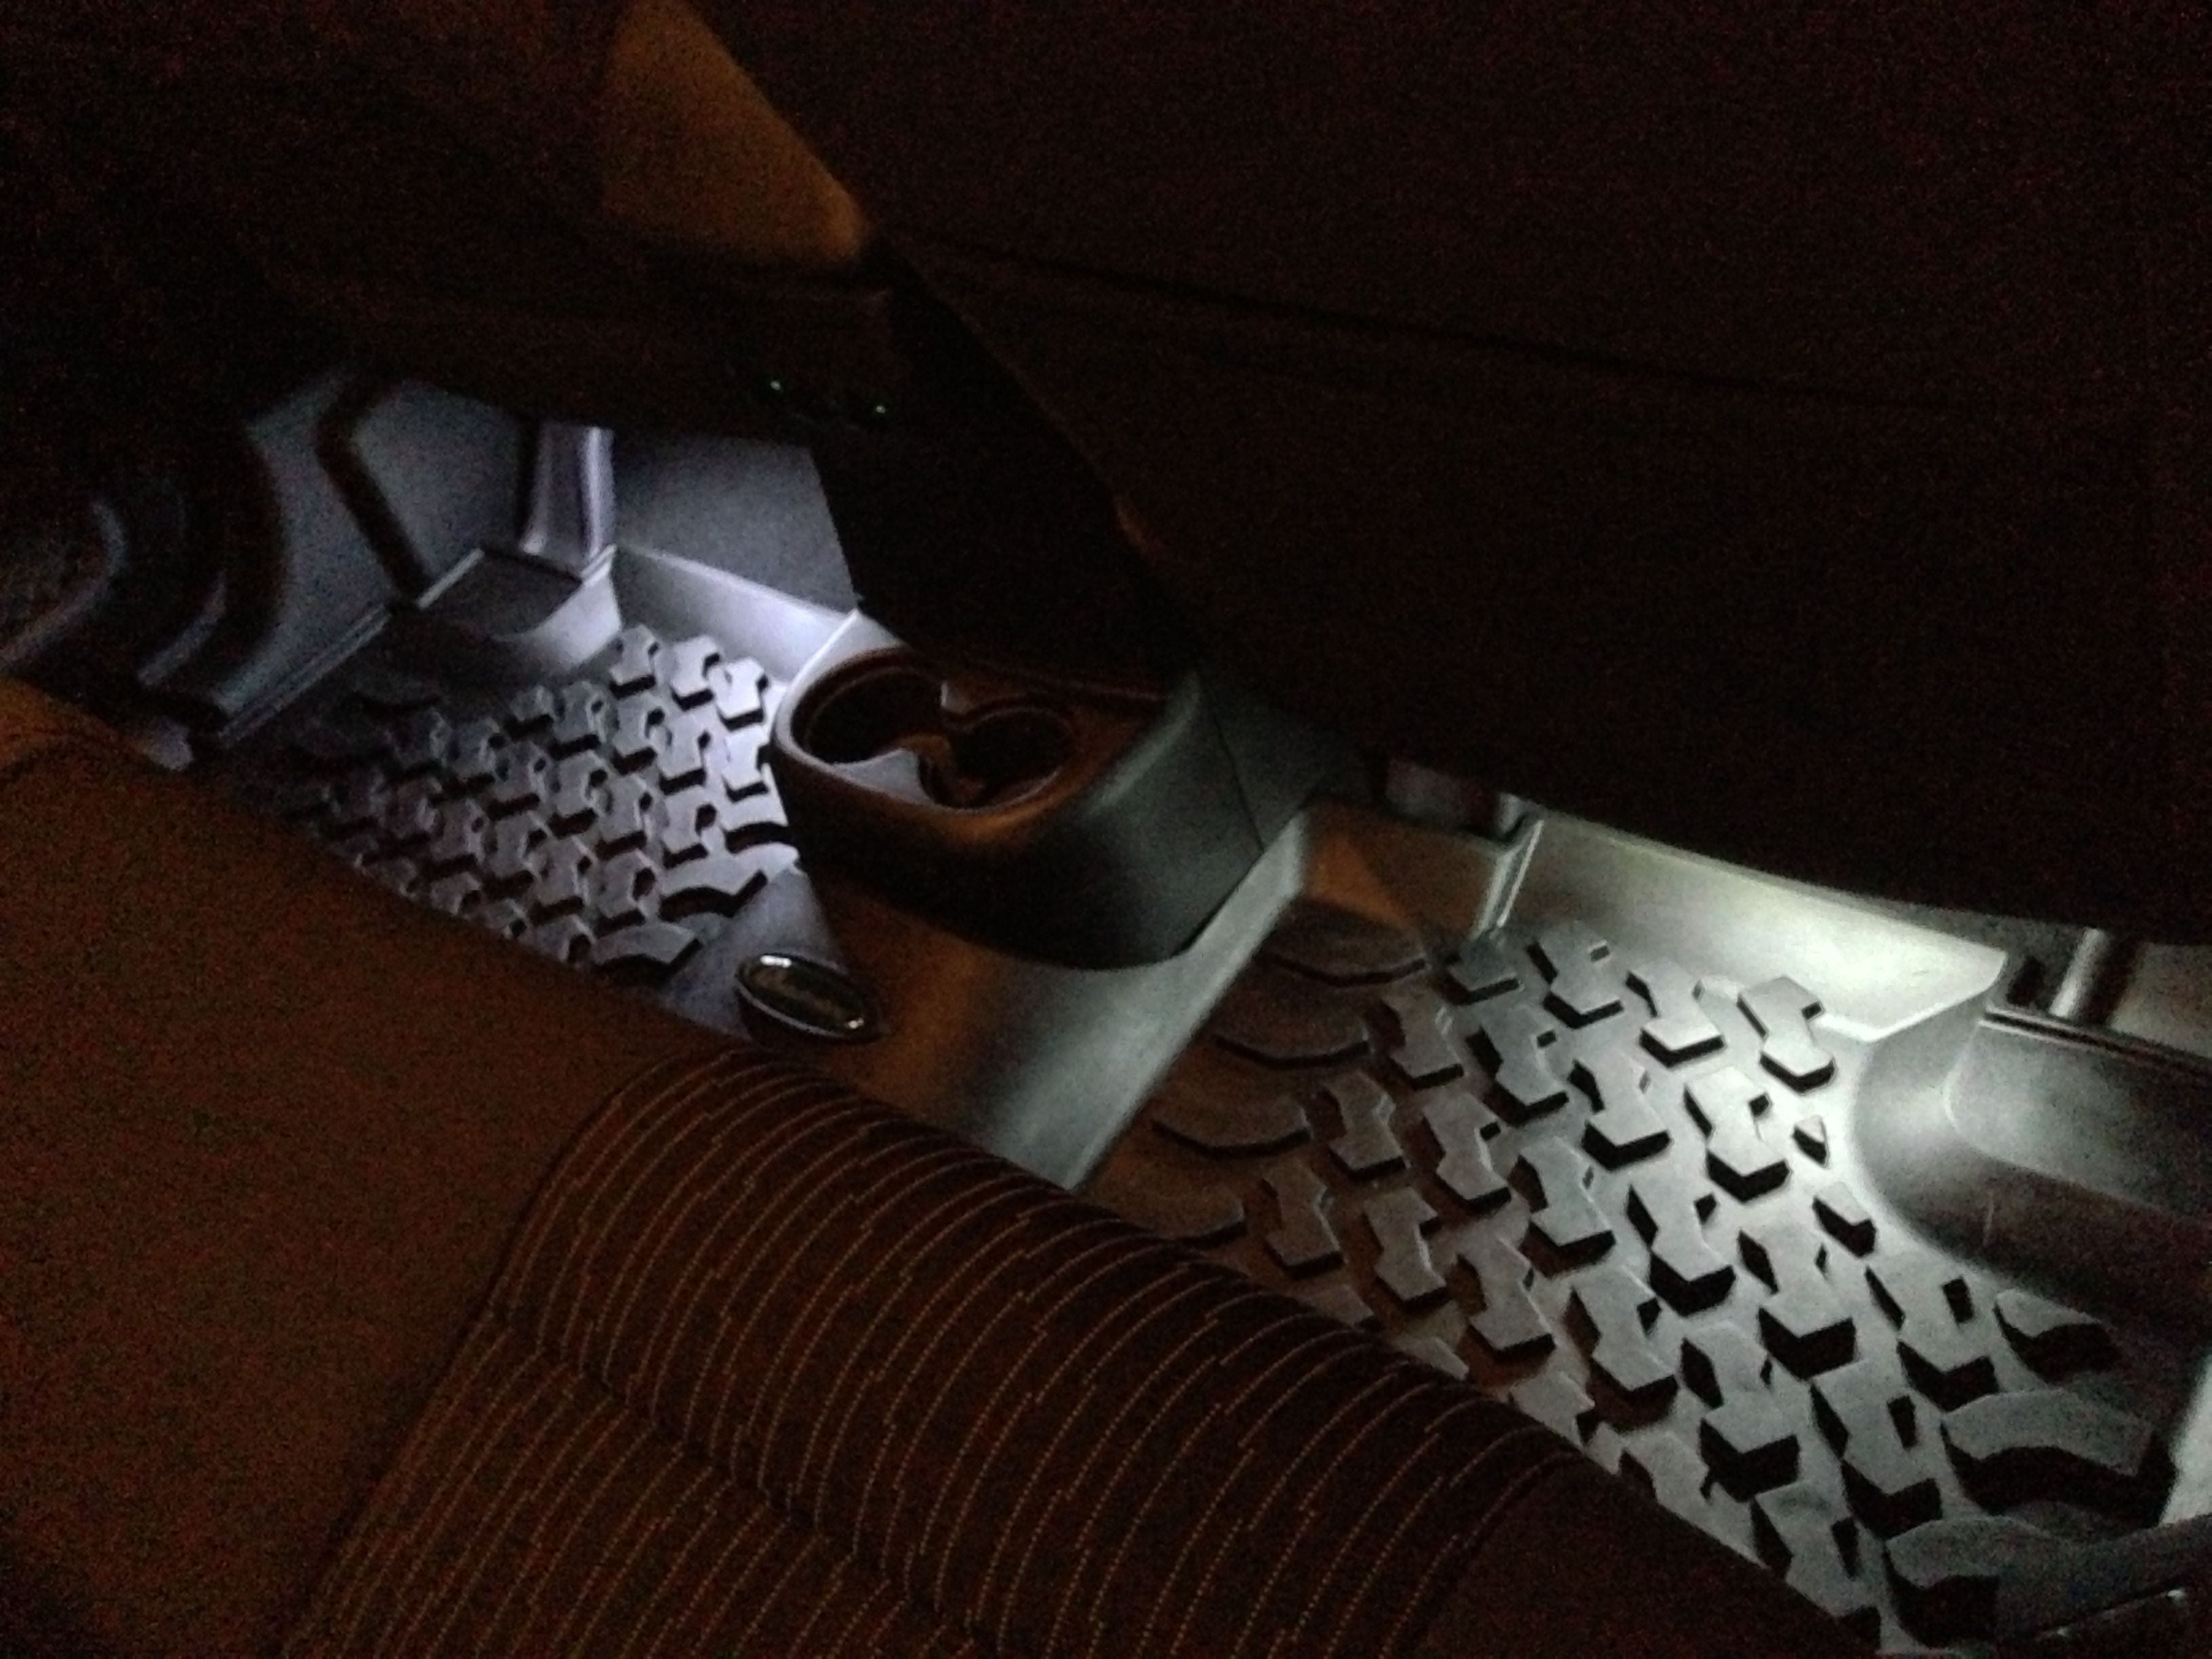 Led Floor Lights For Your Jeep Jk Jeeps Are Awesome But Lack Some